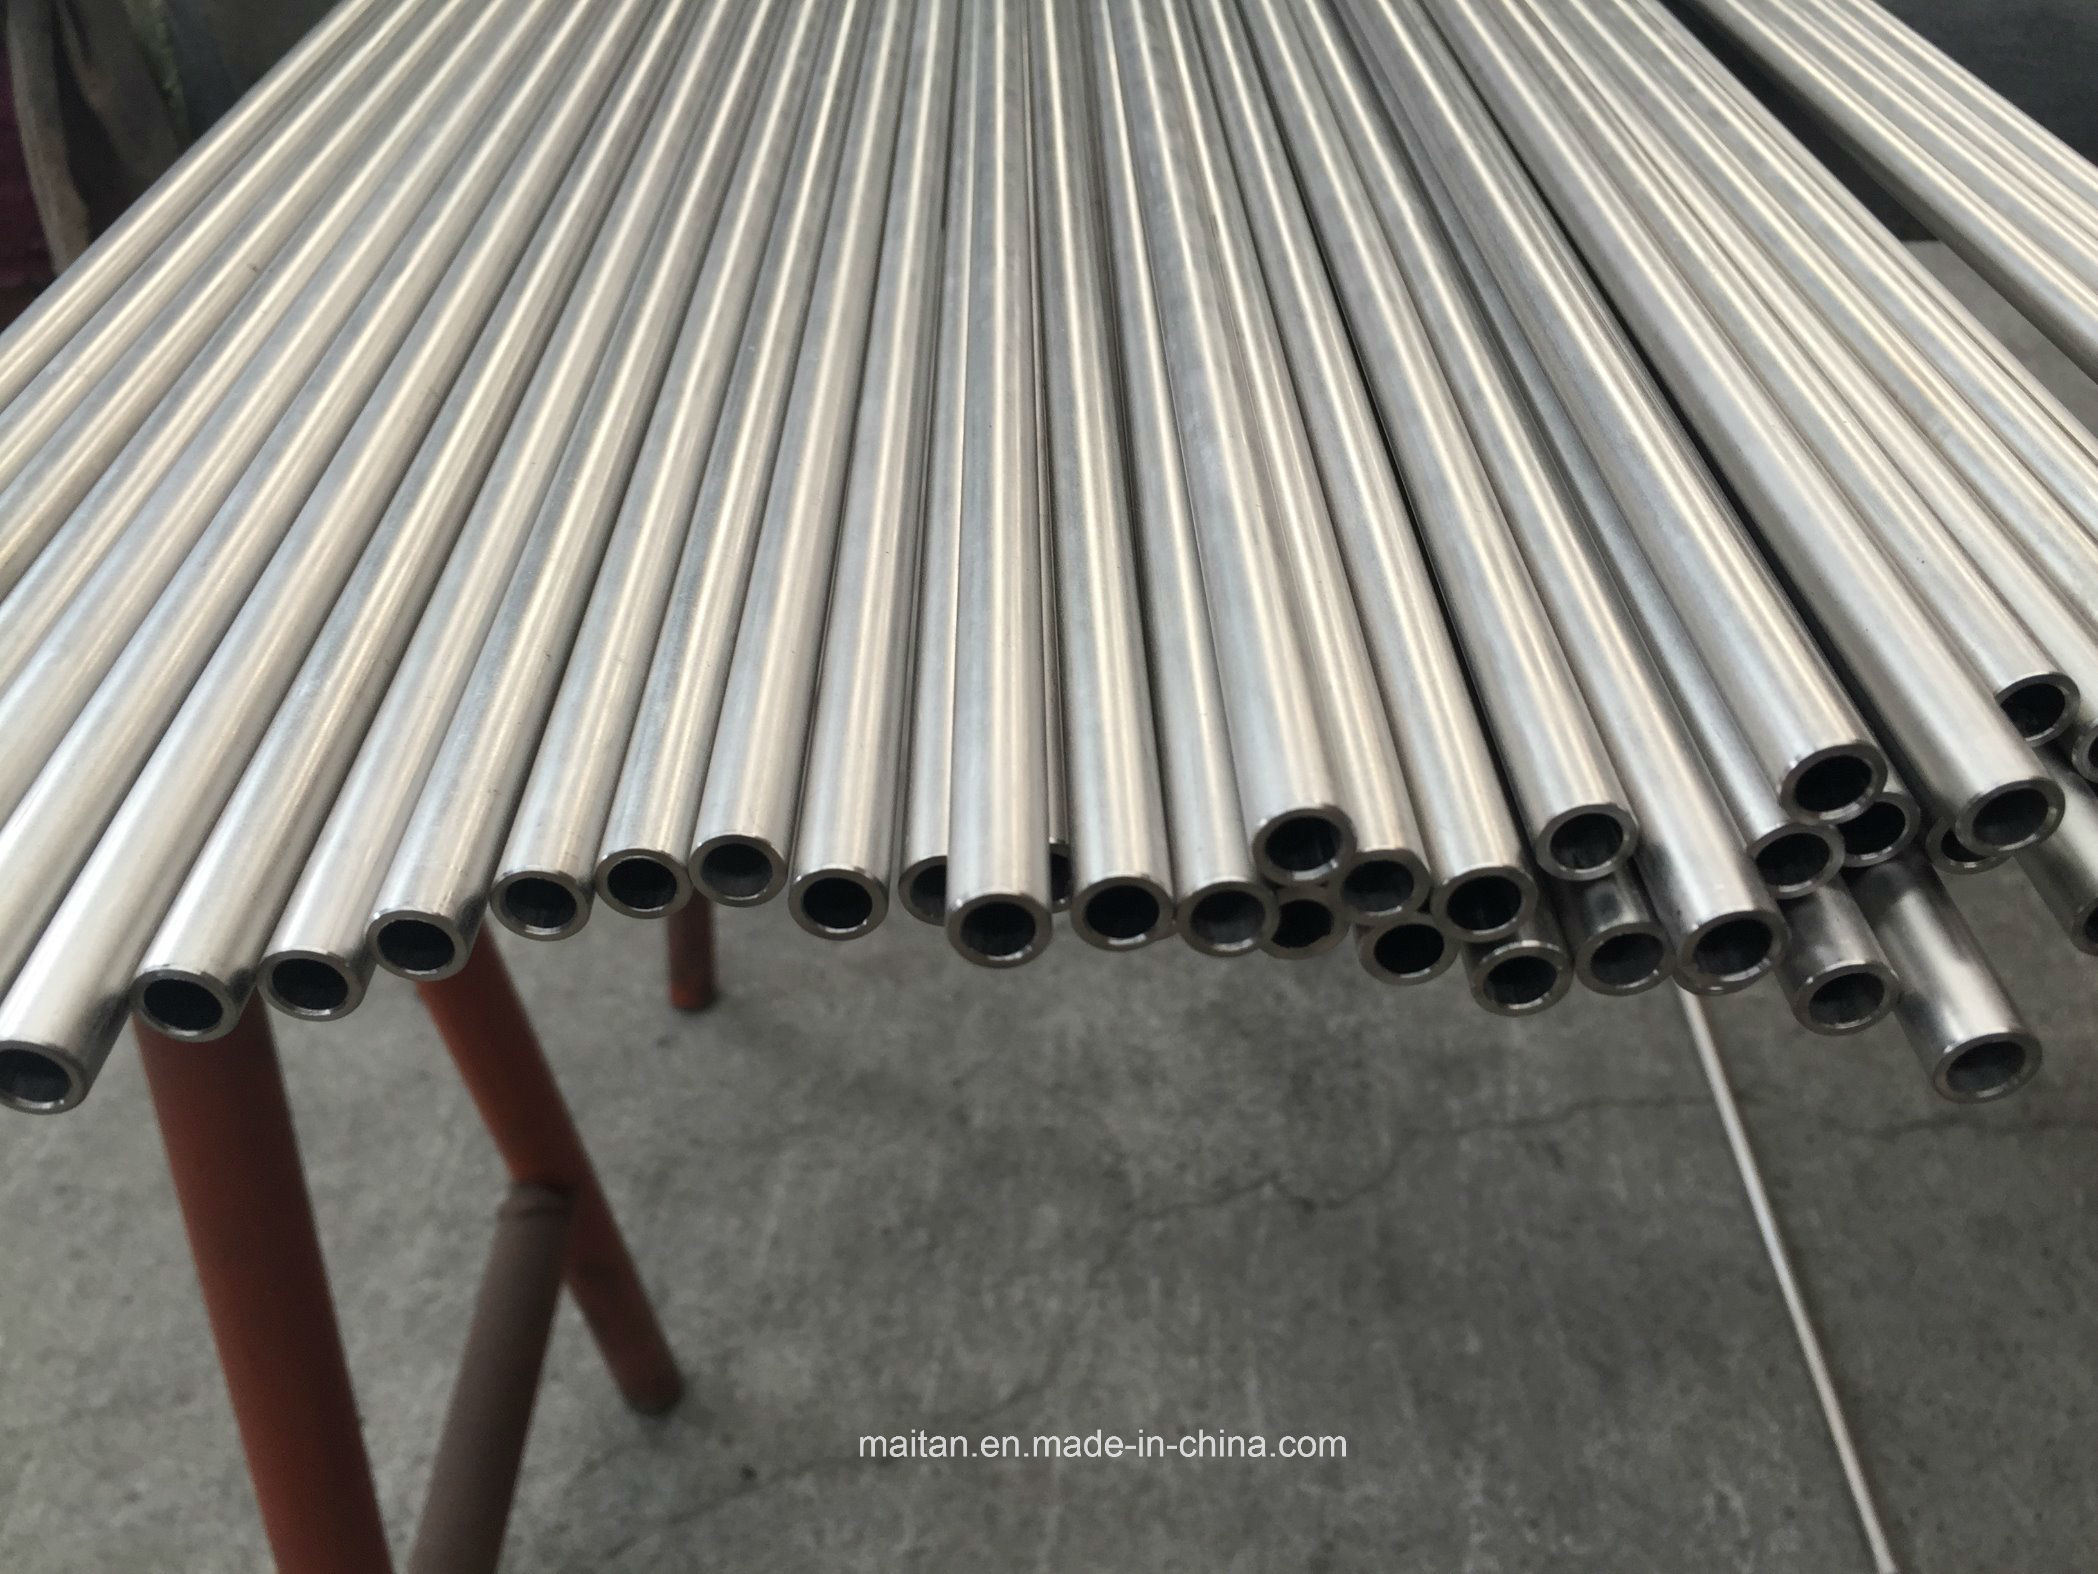 Tongji Engineering ASME Sb338 Gr 2 Od 10 X Wt 1.5mm Seamless Titanium Tube